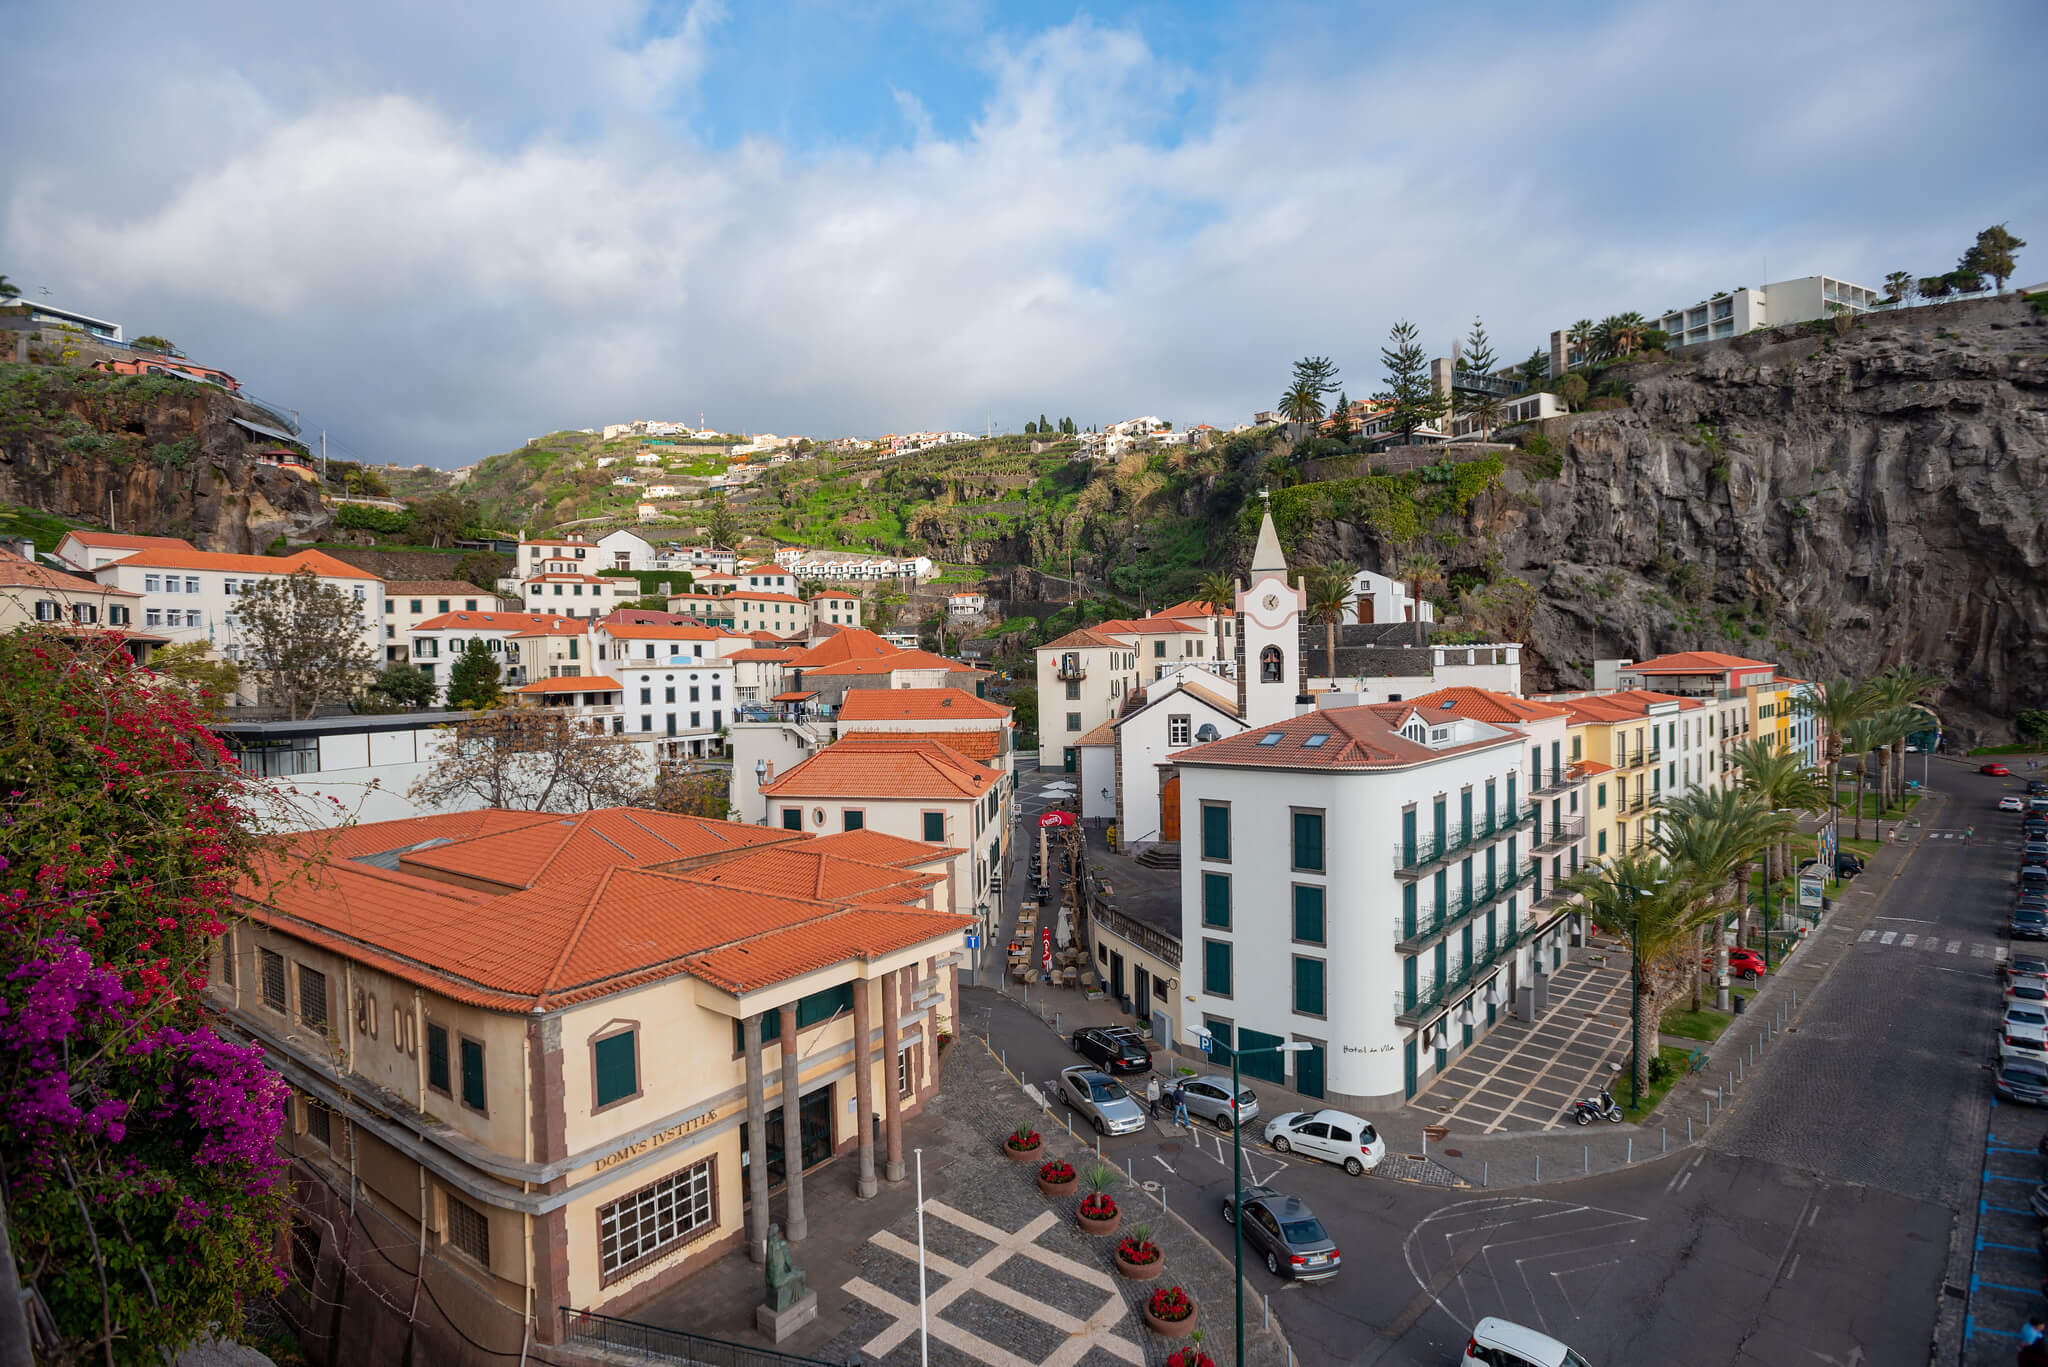 Picture of Funchal, Madeira's capital city